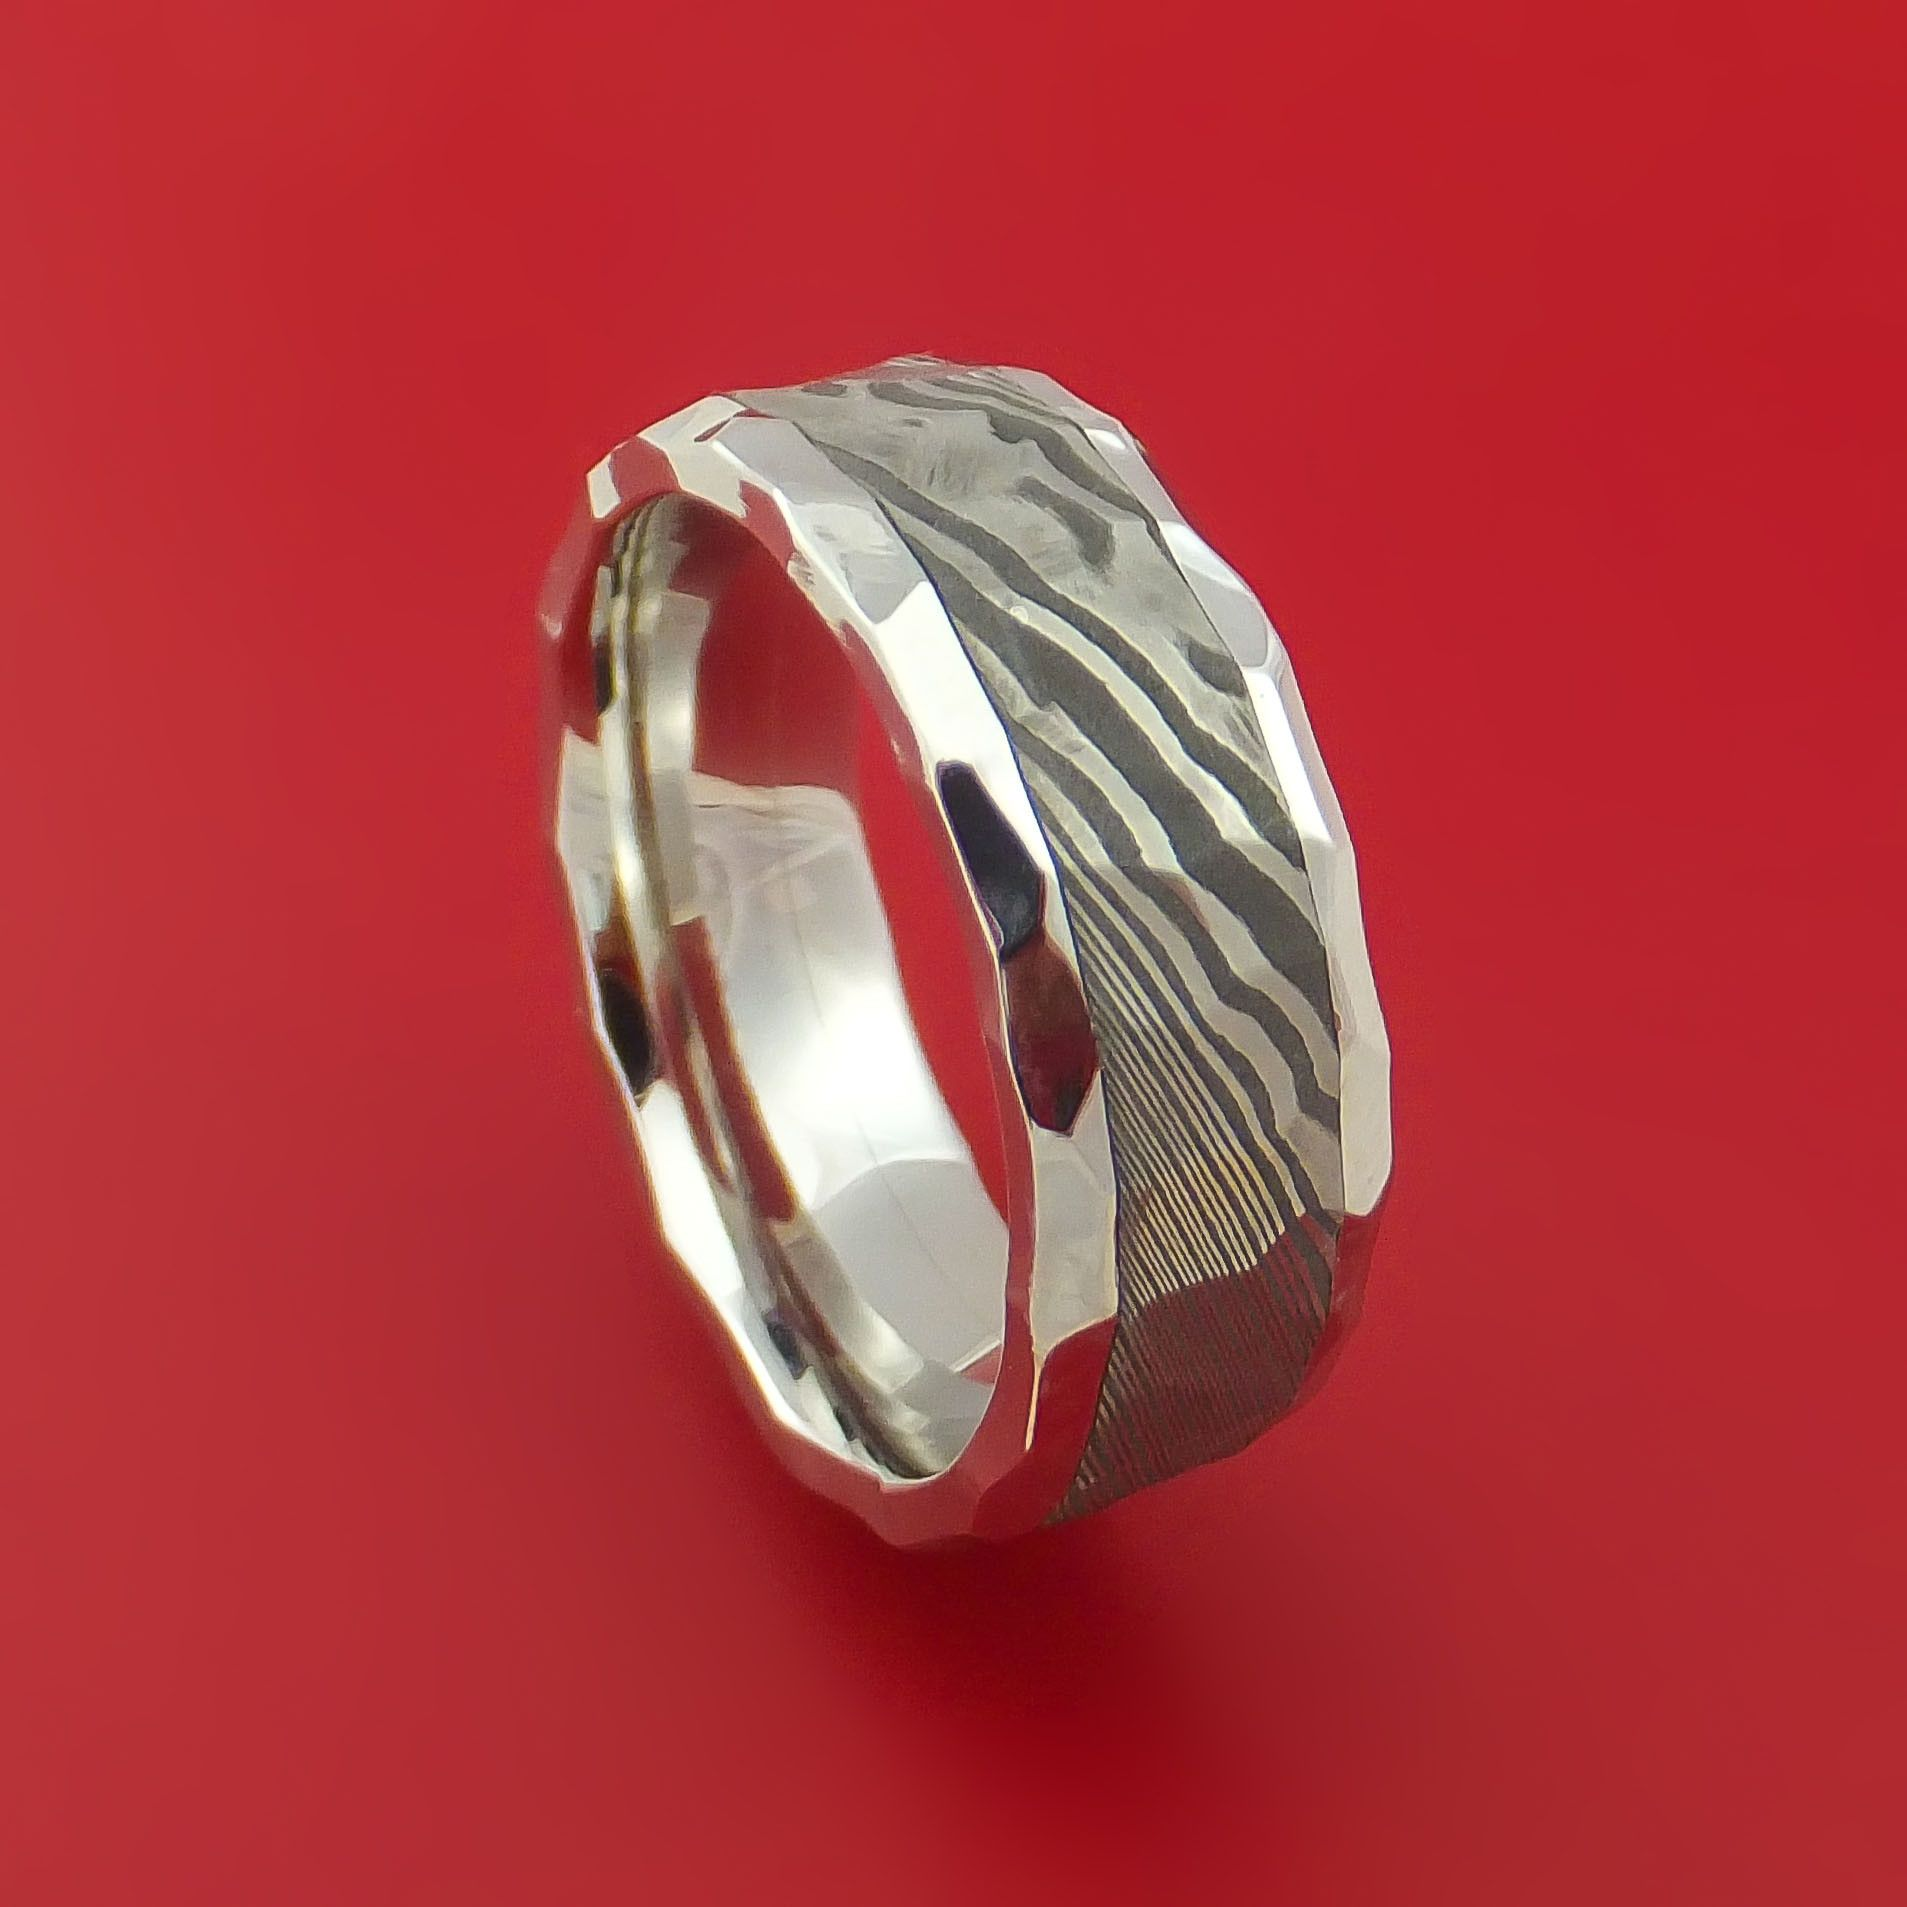 Hammered Cobalt Chrome Ring with Damascus Steel Inlay